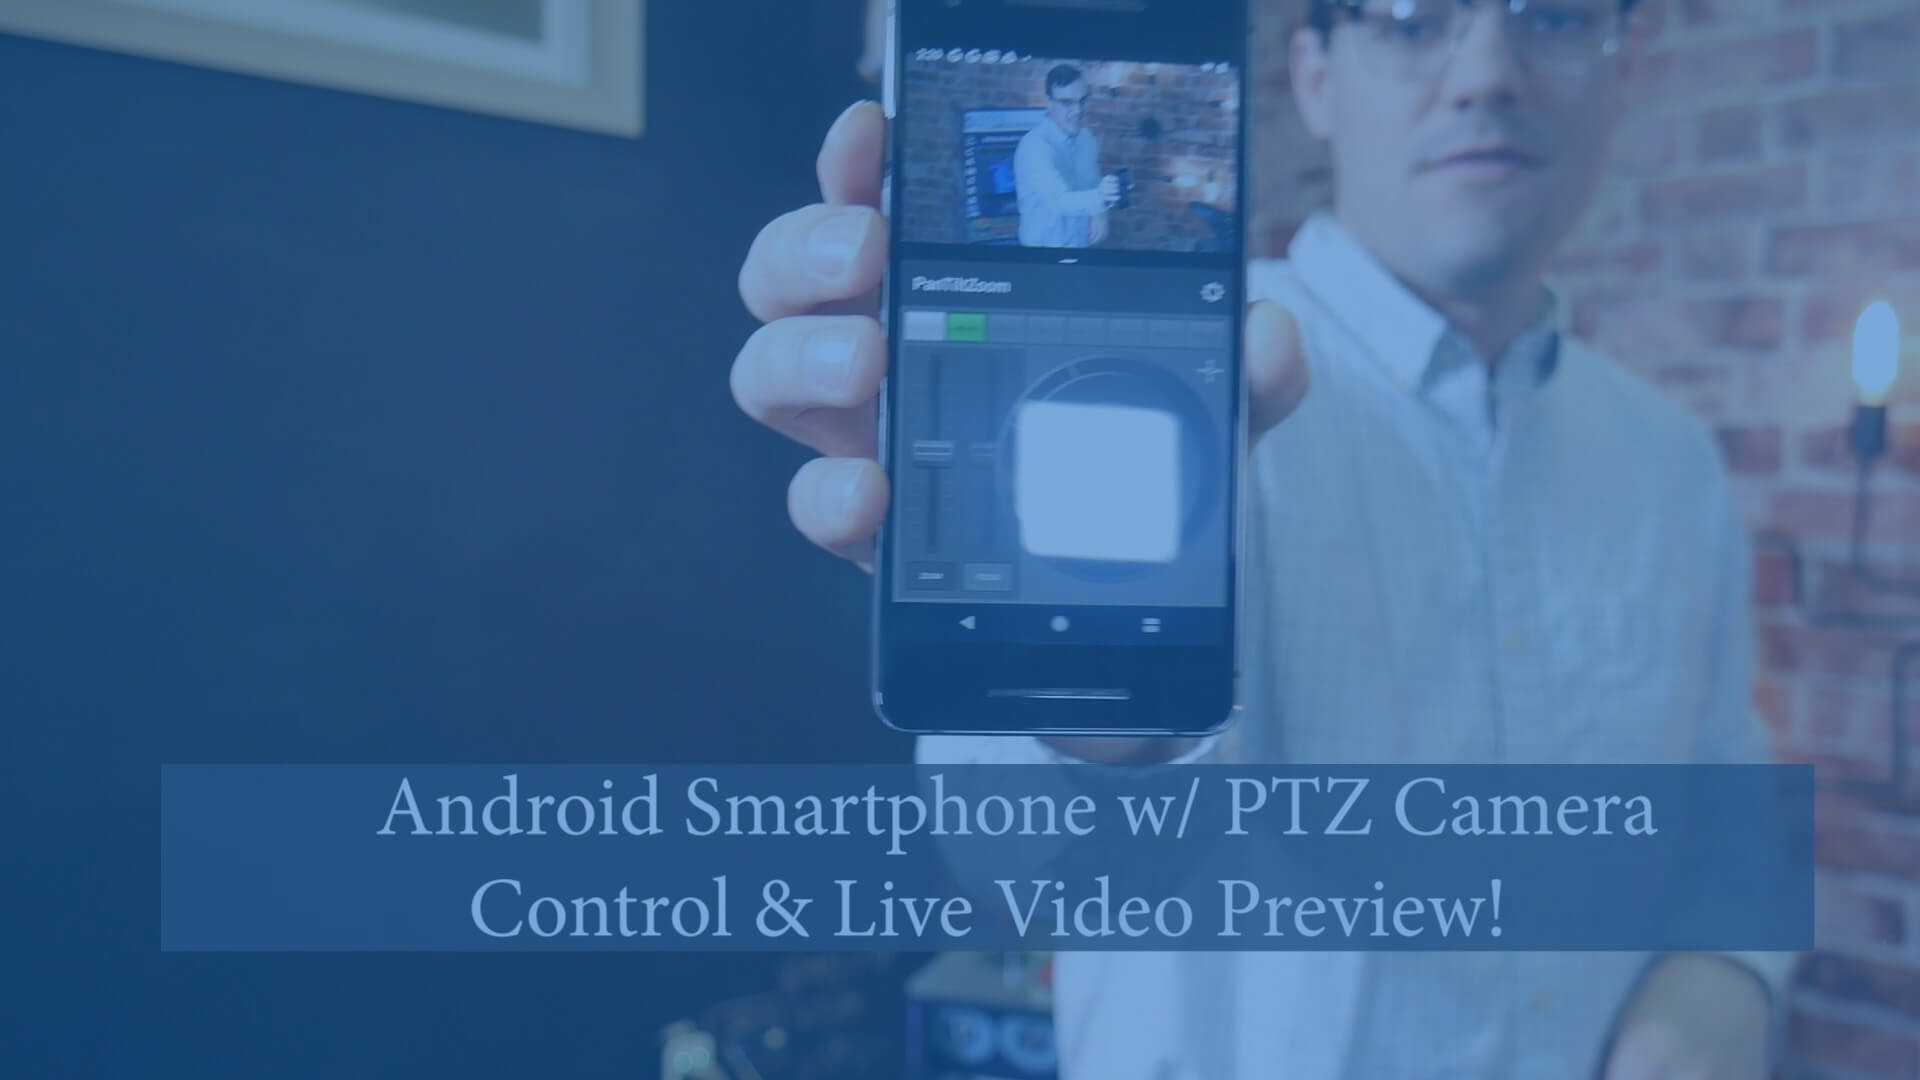 Android PTZ Camera Controls with Live Video Preview